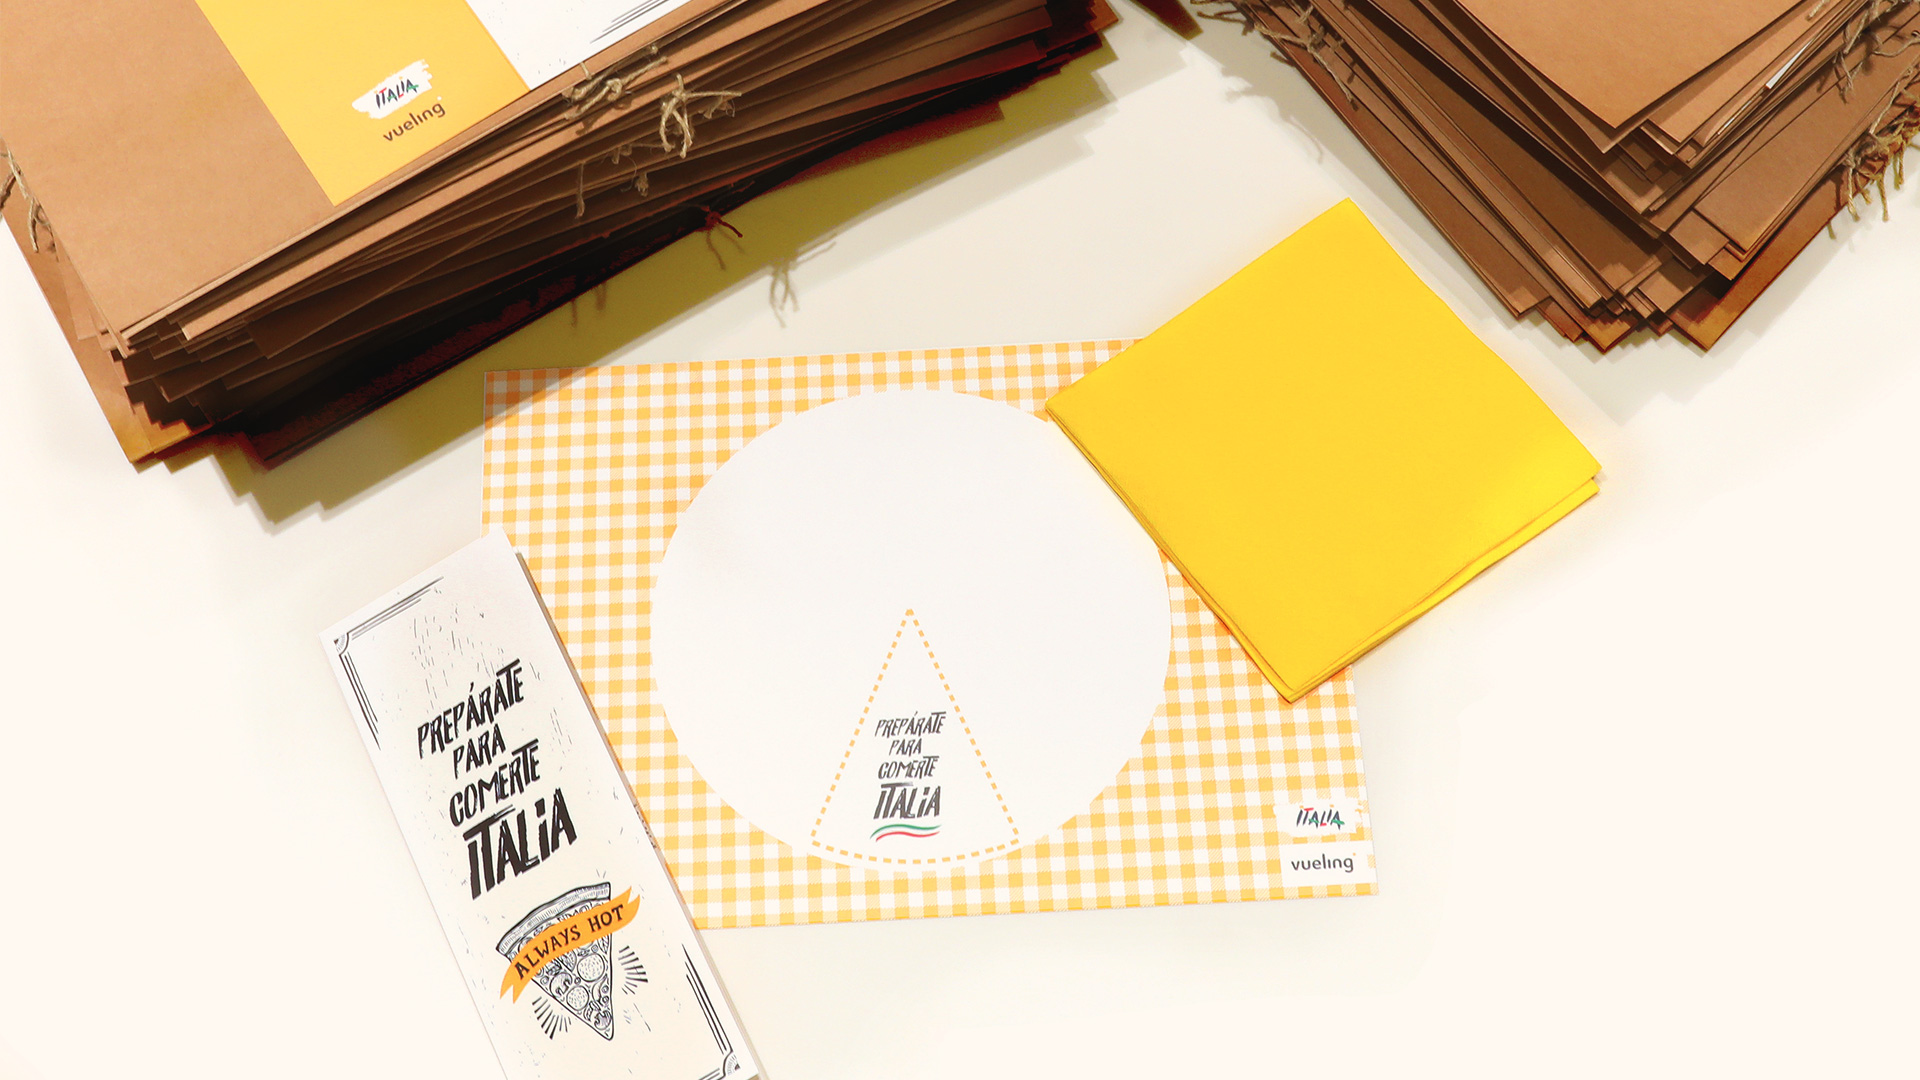 Vueling We Love Pizza - Campaña